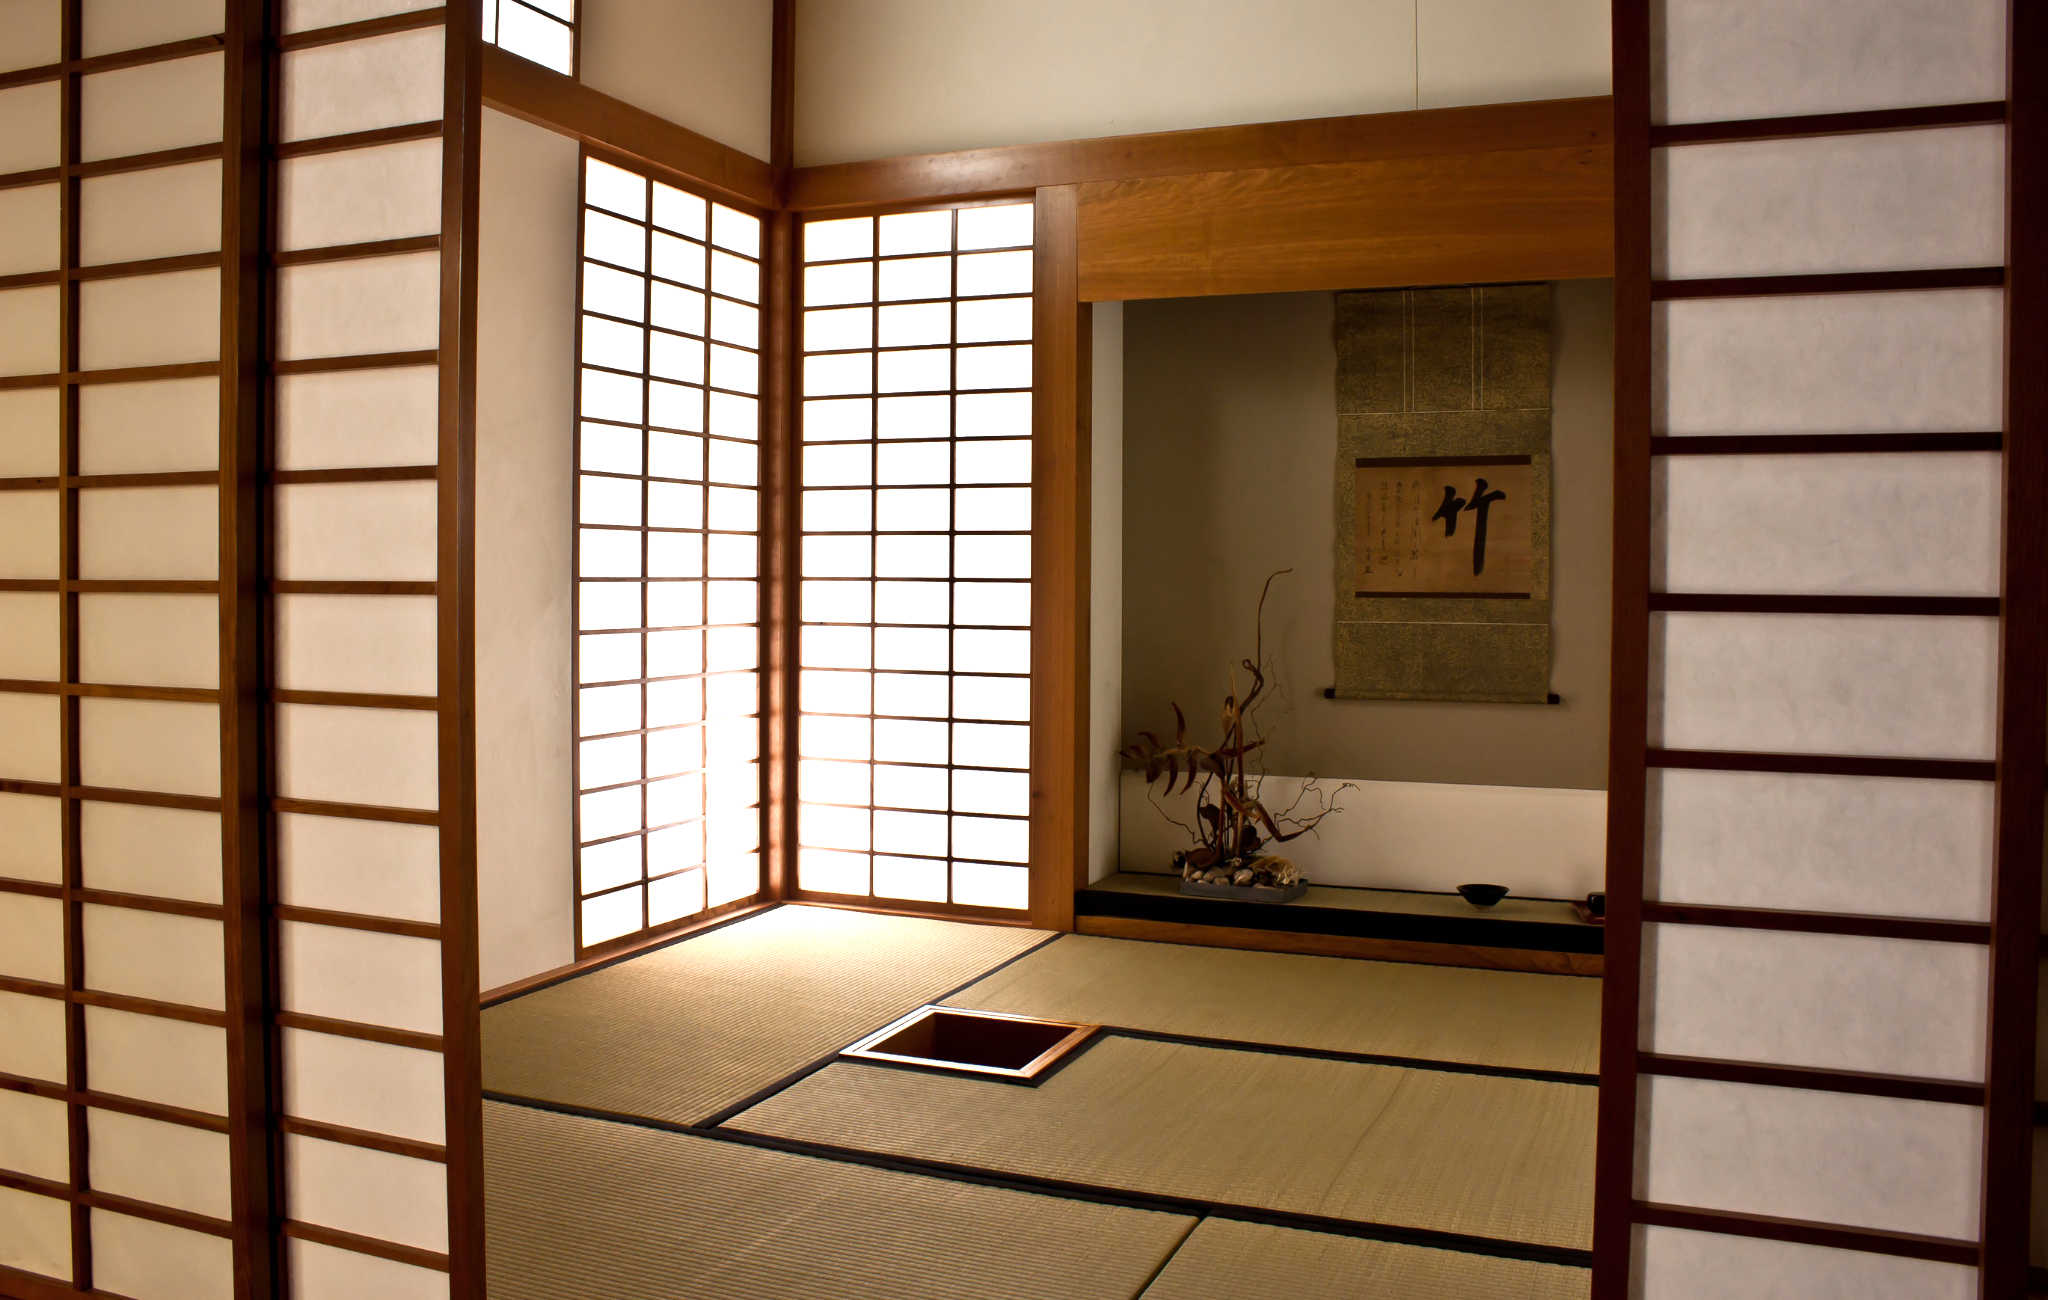 Decoration Interieur Japonais Interieur Japonais Decoration Separation Piece Claustra